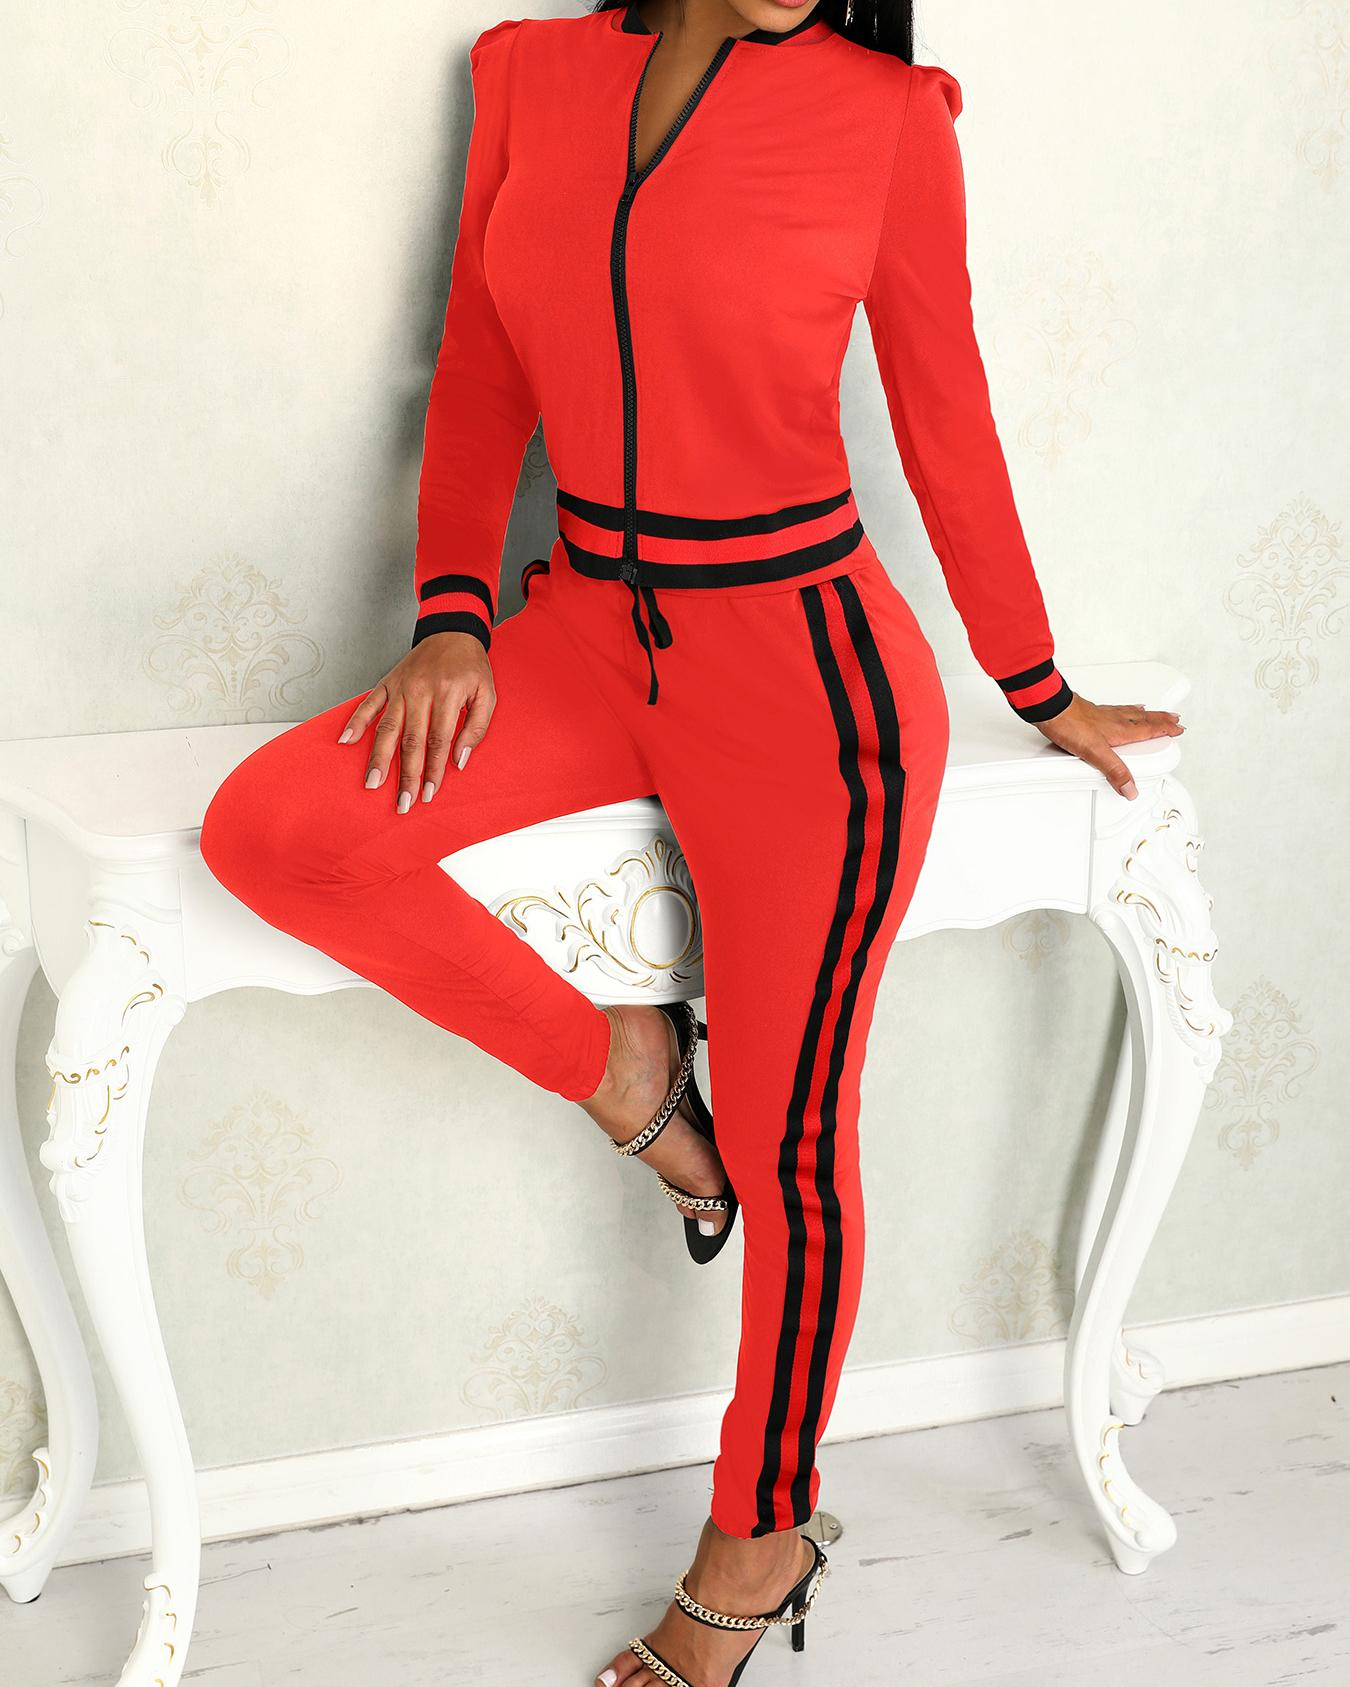 Contrast Binding Leg of Mutton Sleeve Pantsuit фото